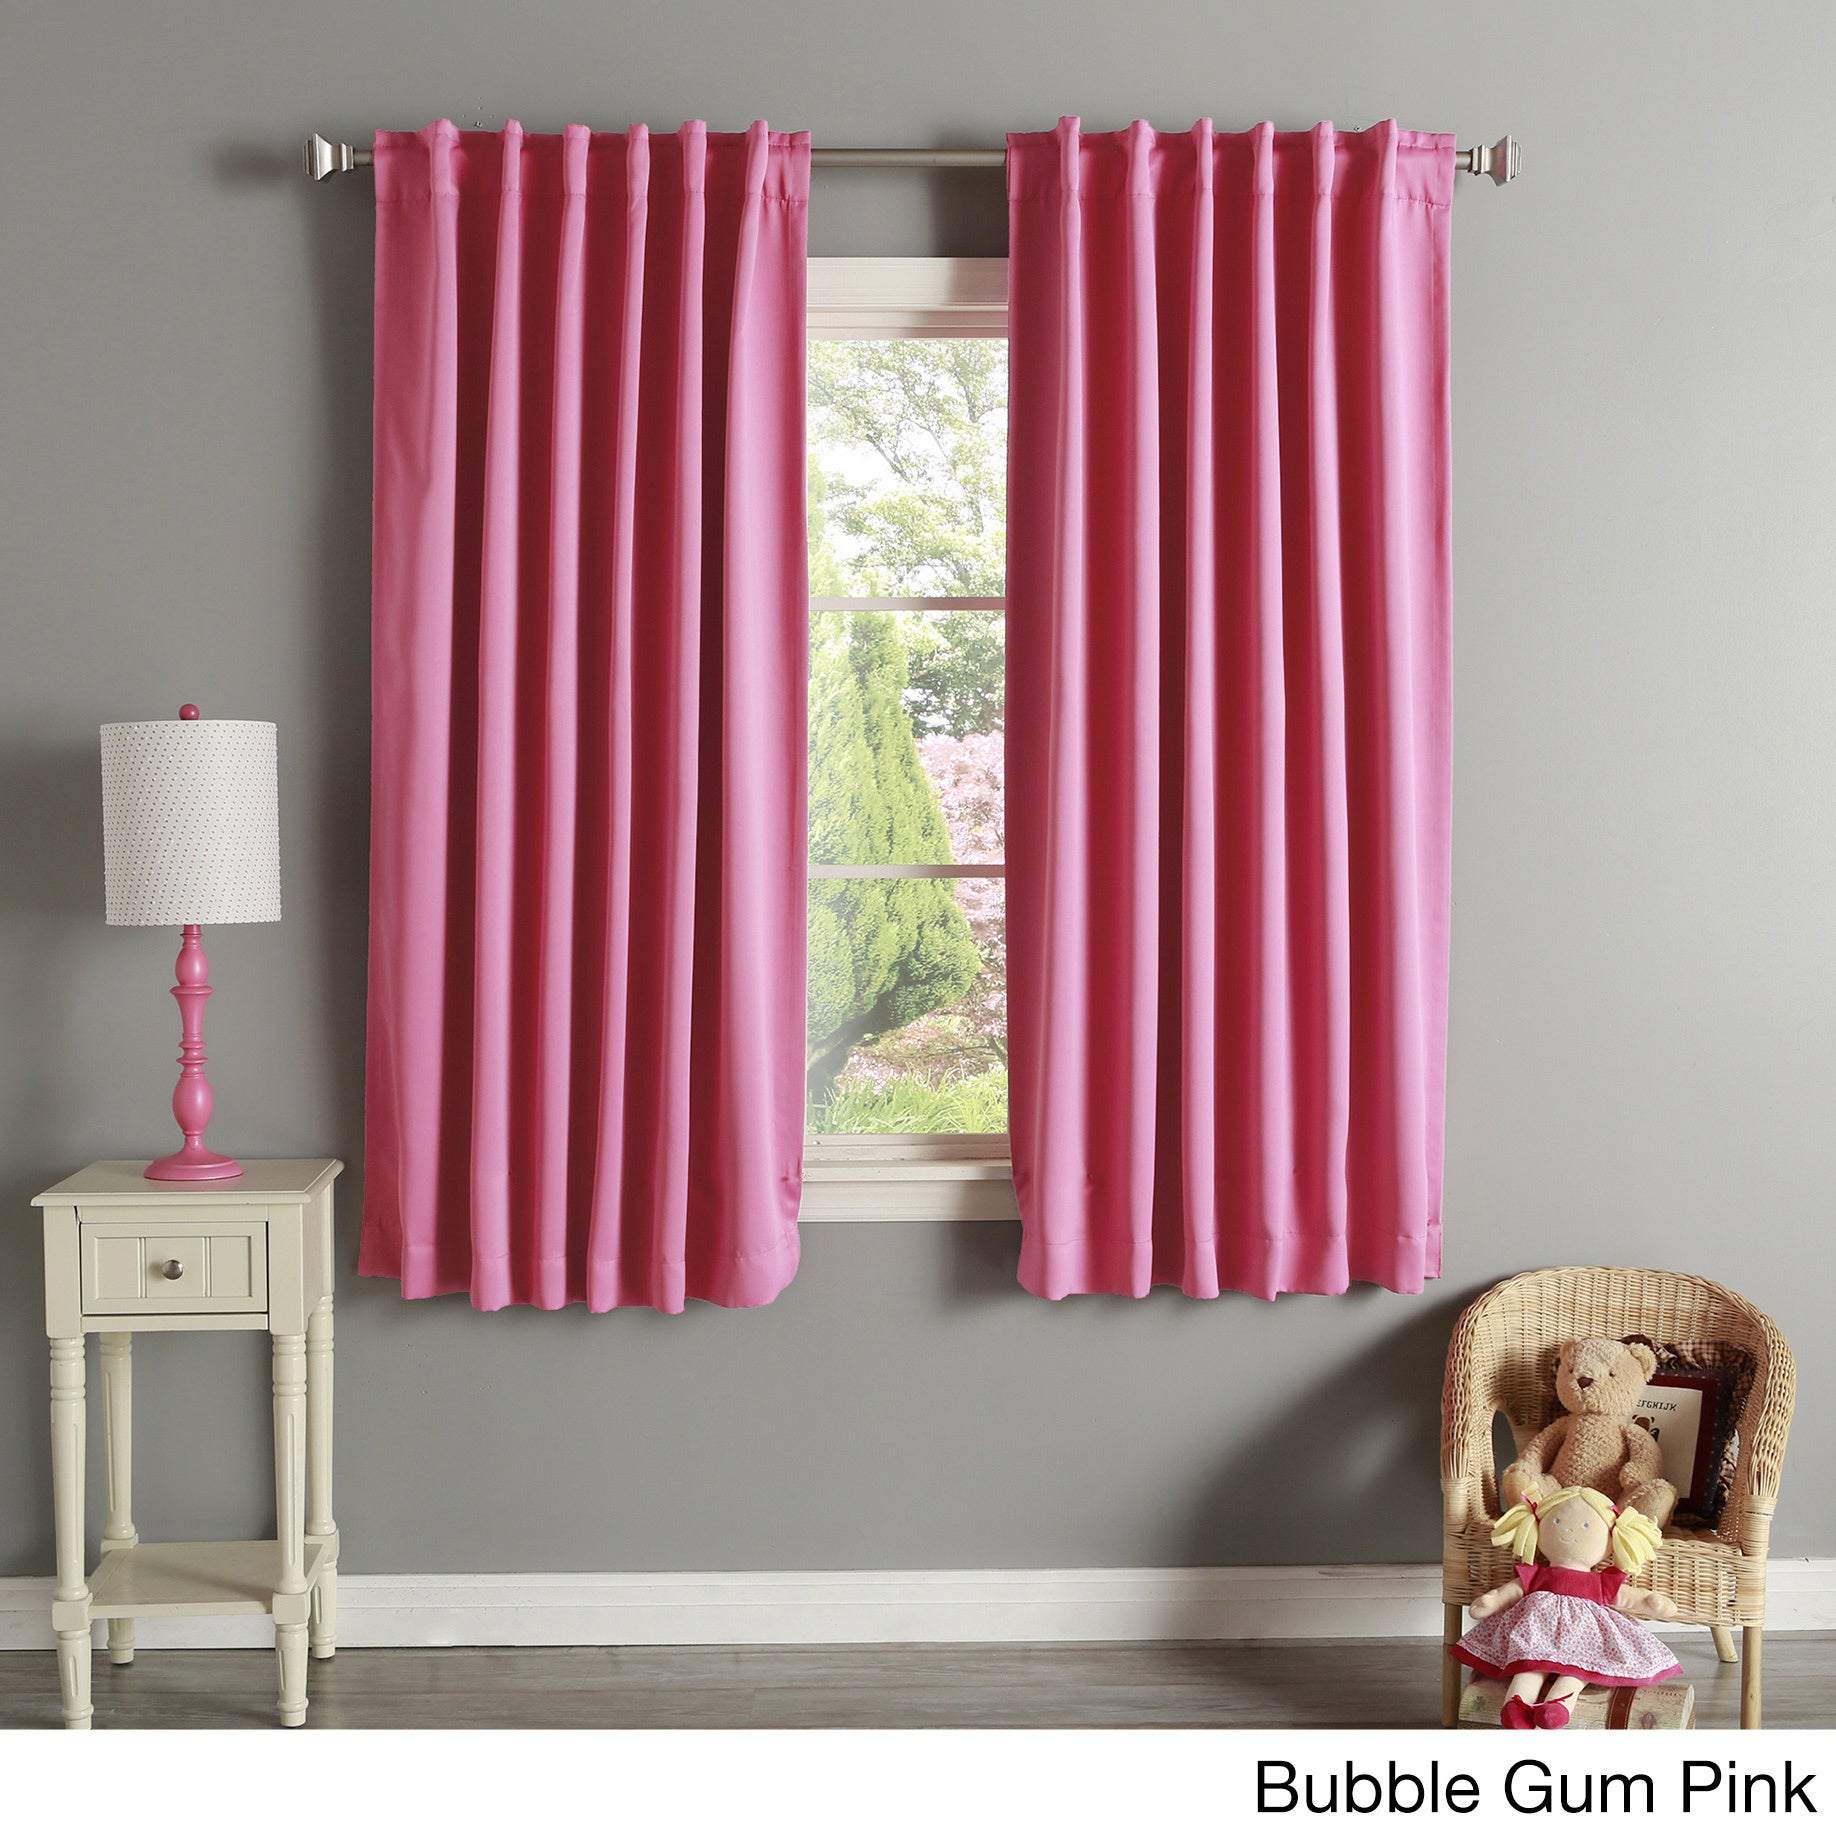 Aurora Home Solid Insulated Thermal 63 Inch Blackout Curtain Panel Pair On Free Shipping Orders Over 45 2946006